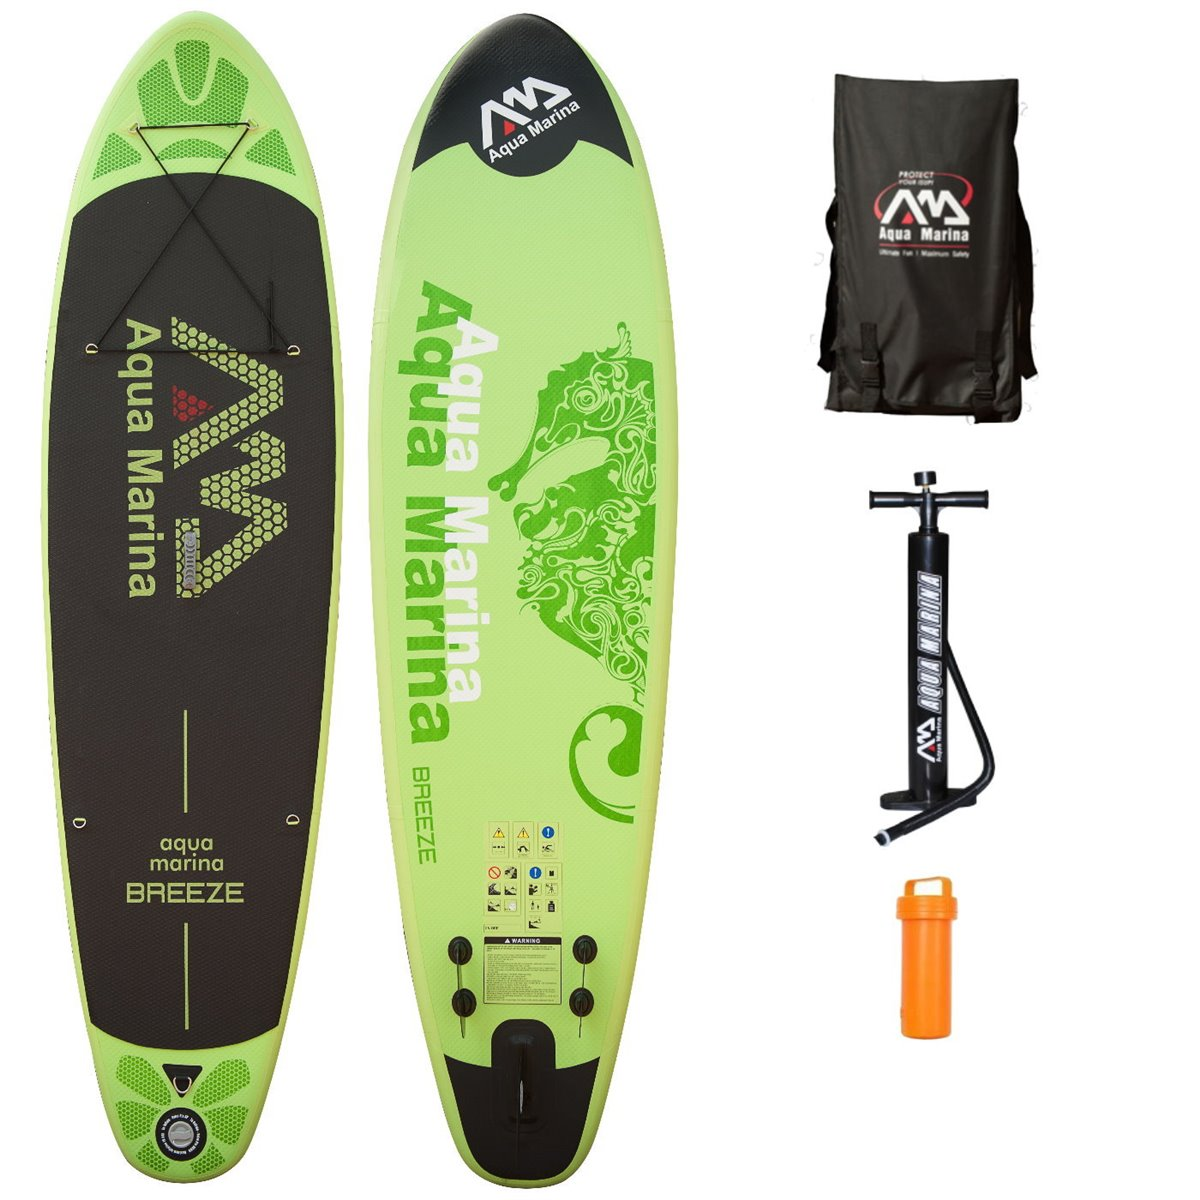 Breeze Isup Paddle Board Zum Outlet Preis 300x75x10 Cm